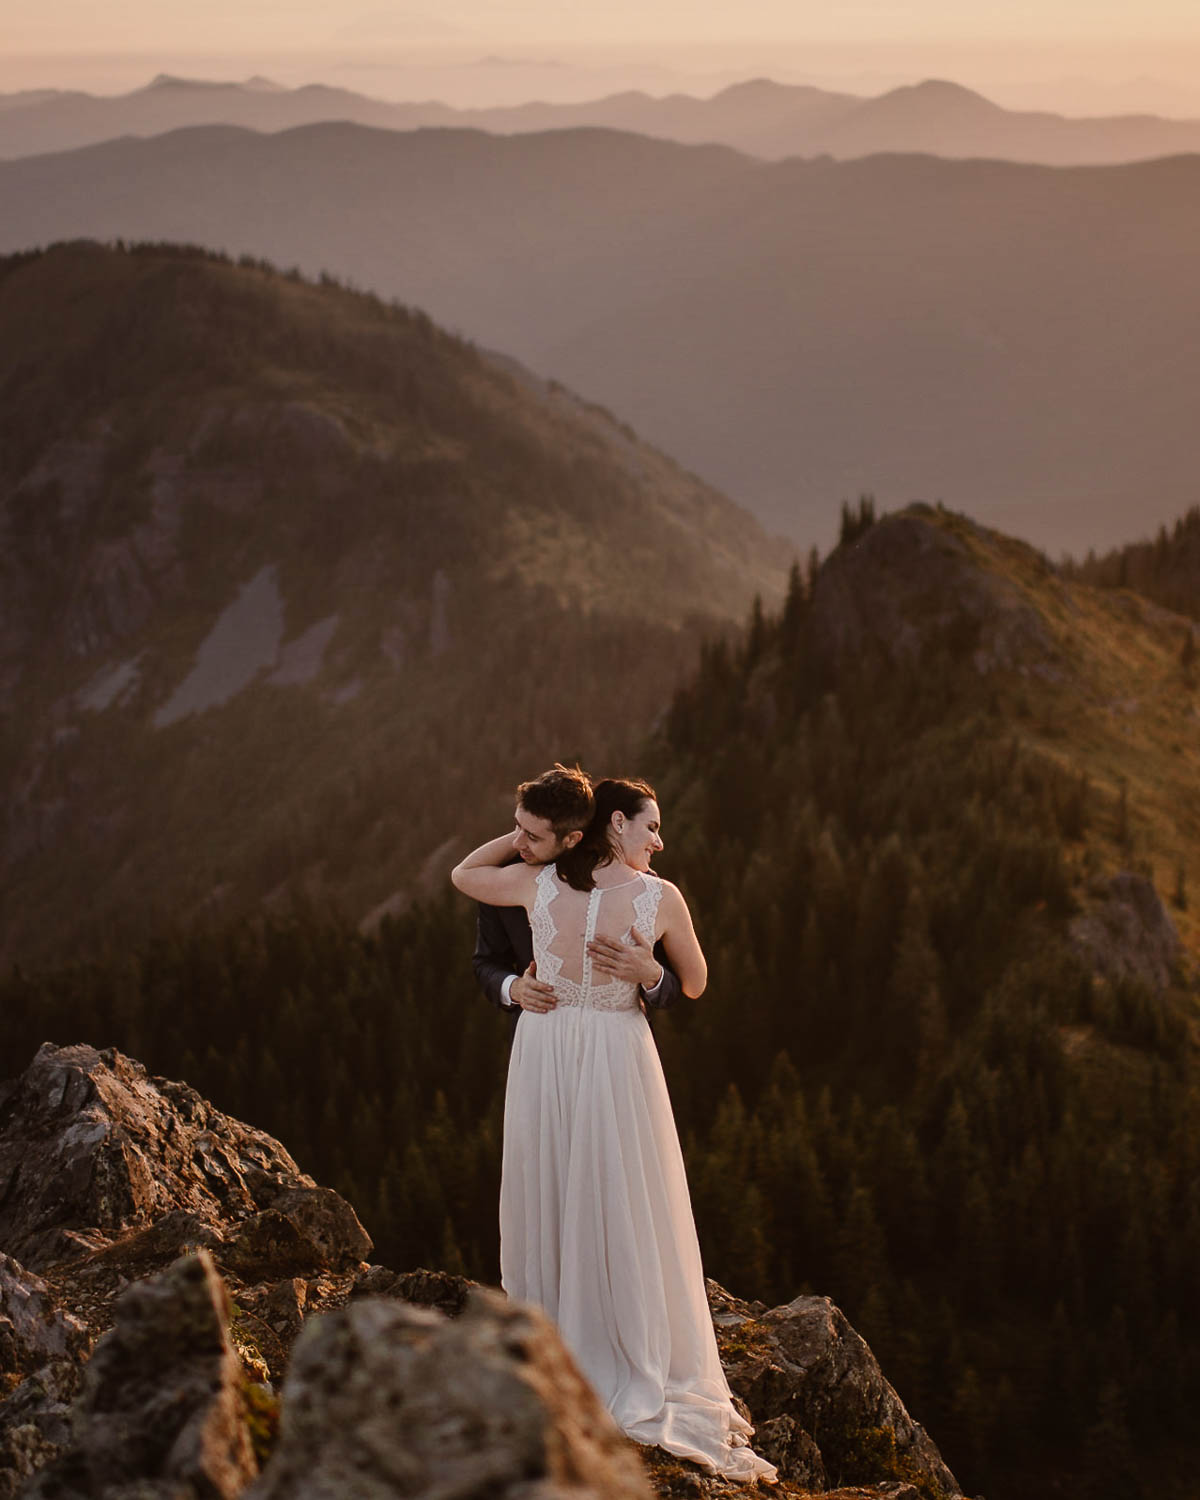 Pacific Northwest Elopements & Intimate Weddings(WA, OR, ID) - The Pacific Northwest is full of some of the best elopement locations in the country—and we'd love to help you find the most incredible spot to say your vows. Whether you plan to elope near Seattle or Portland, on the coast, or in the mountains, we can't wait to share all the ideas we have and help make your day PNW elopement incredible.